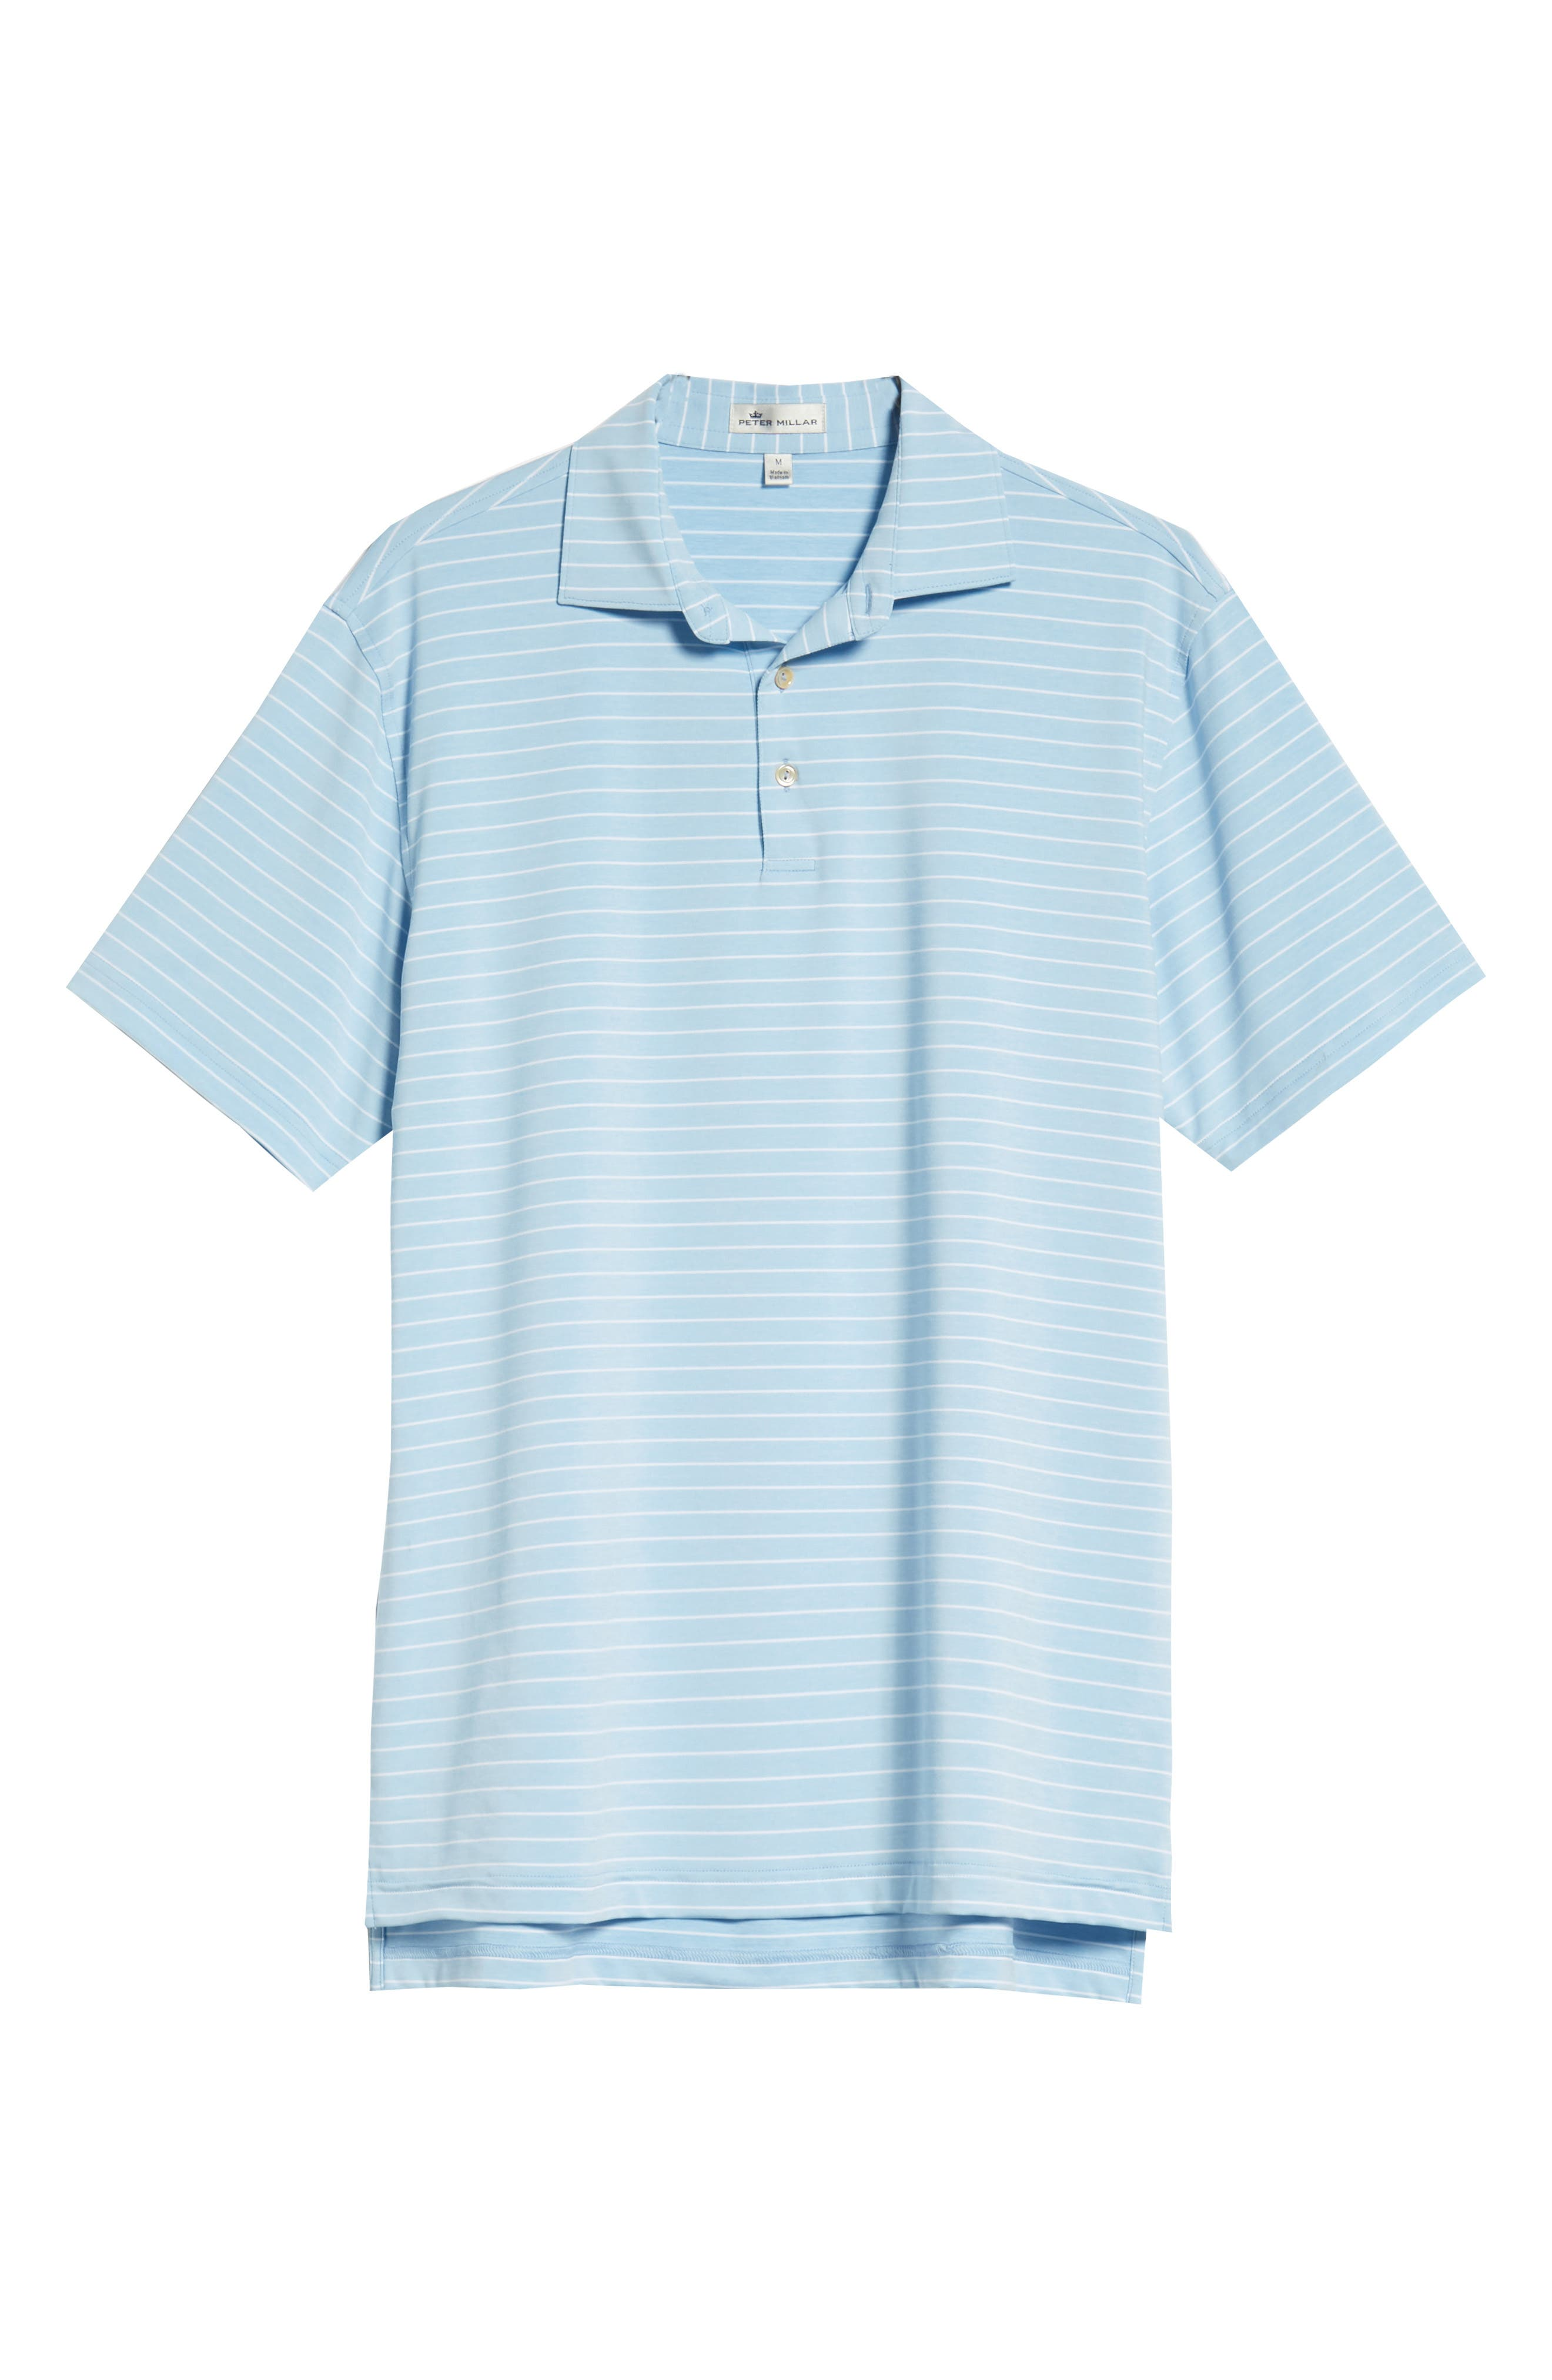 Halifax Stripe Stretch Jersey Polo,                             Alternate thumbnail 6, color,                             COTTAGE BLUE